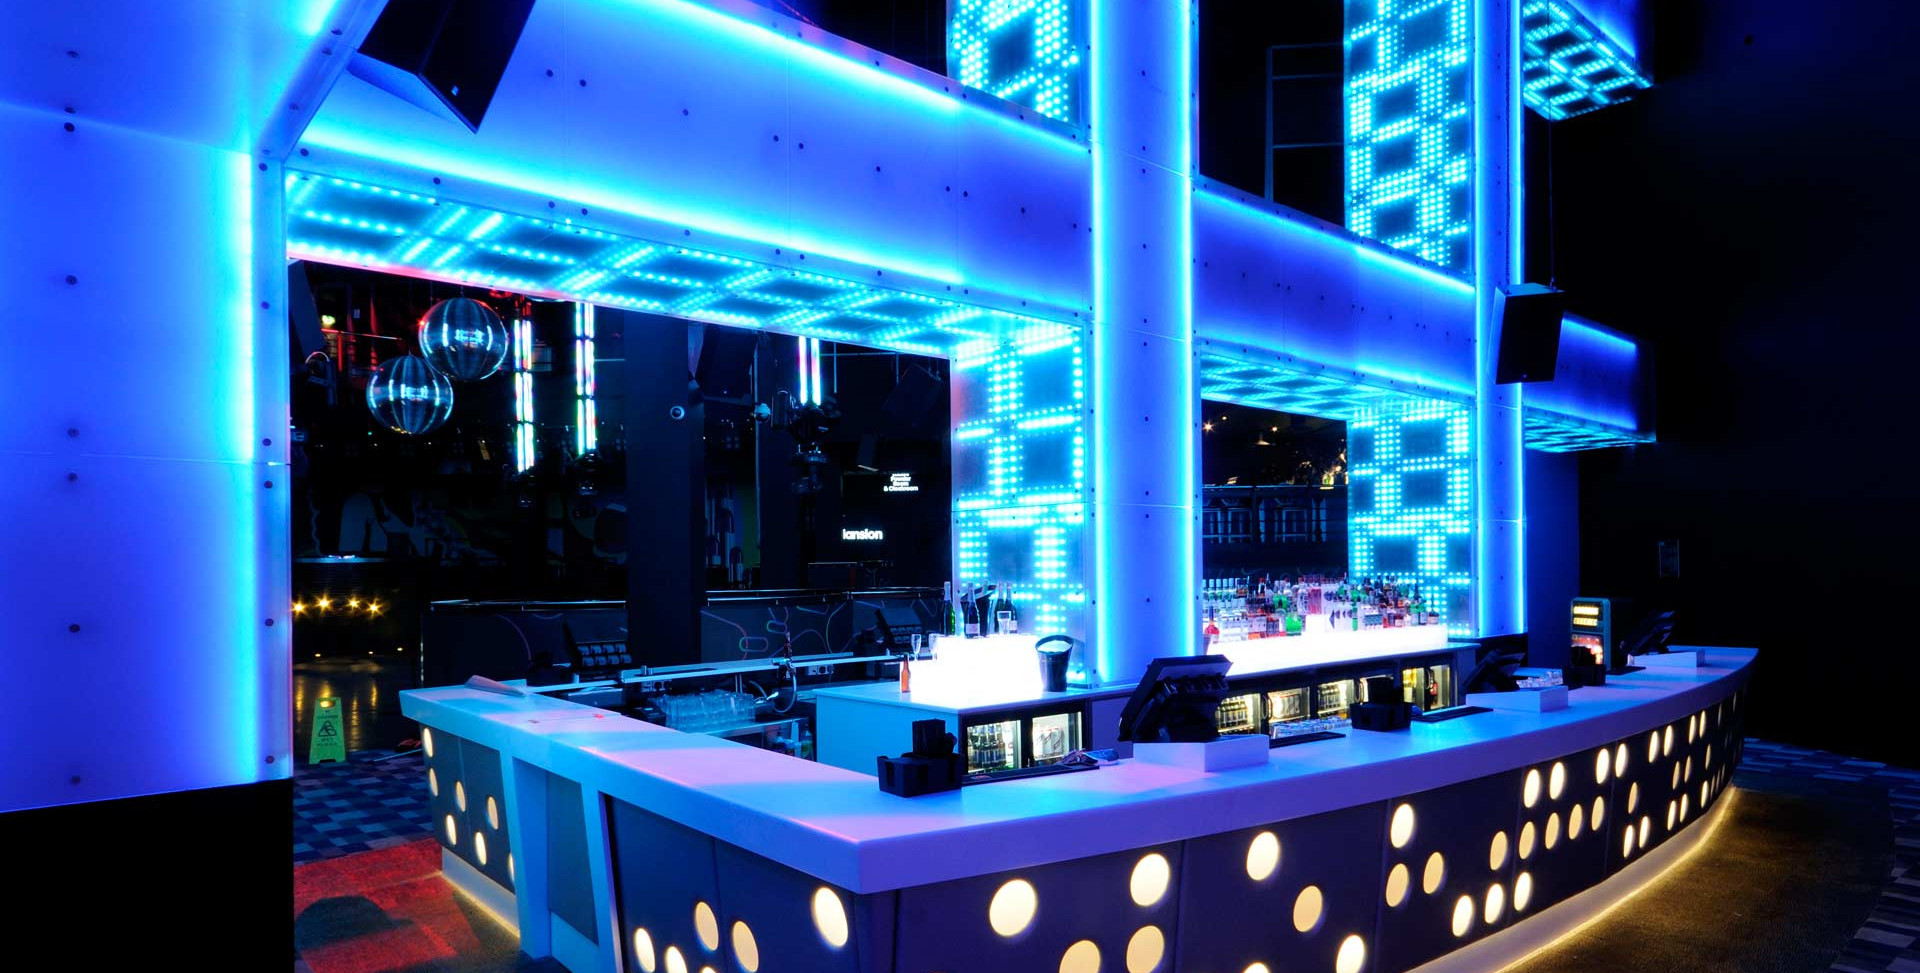 dynaled-club-disco-lighting-examples-21.